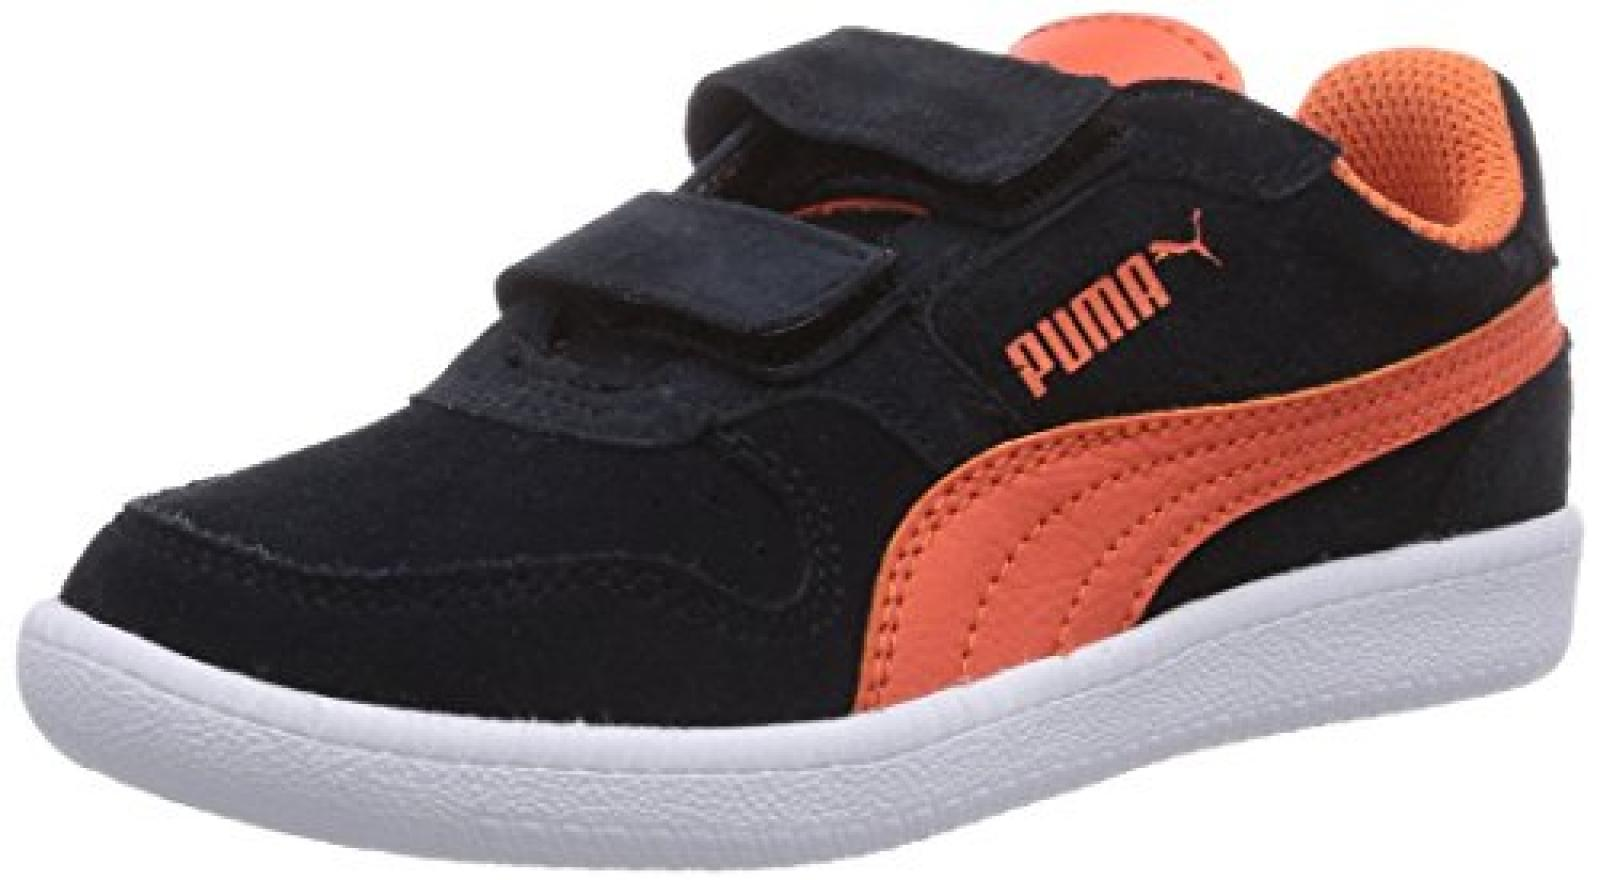 Puma Icra Trainer SD V Unisex-Kinder Sneakers